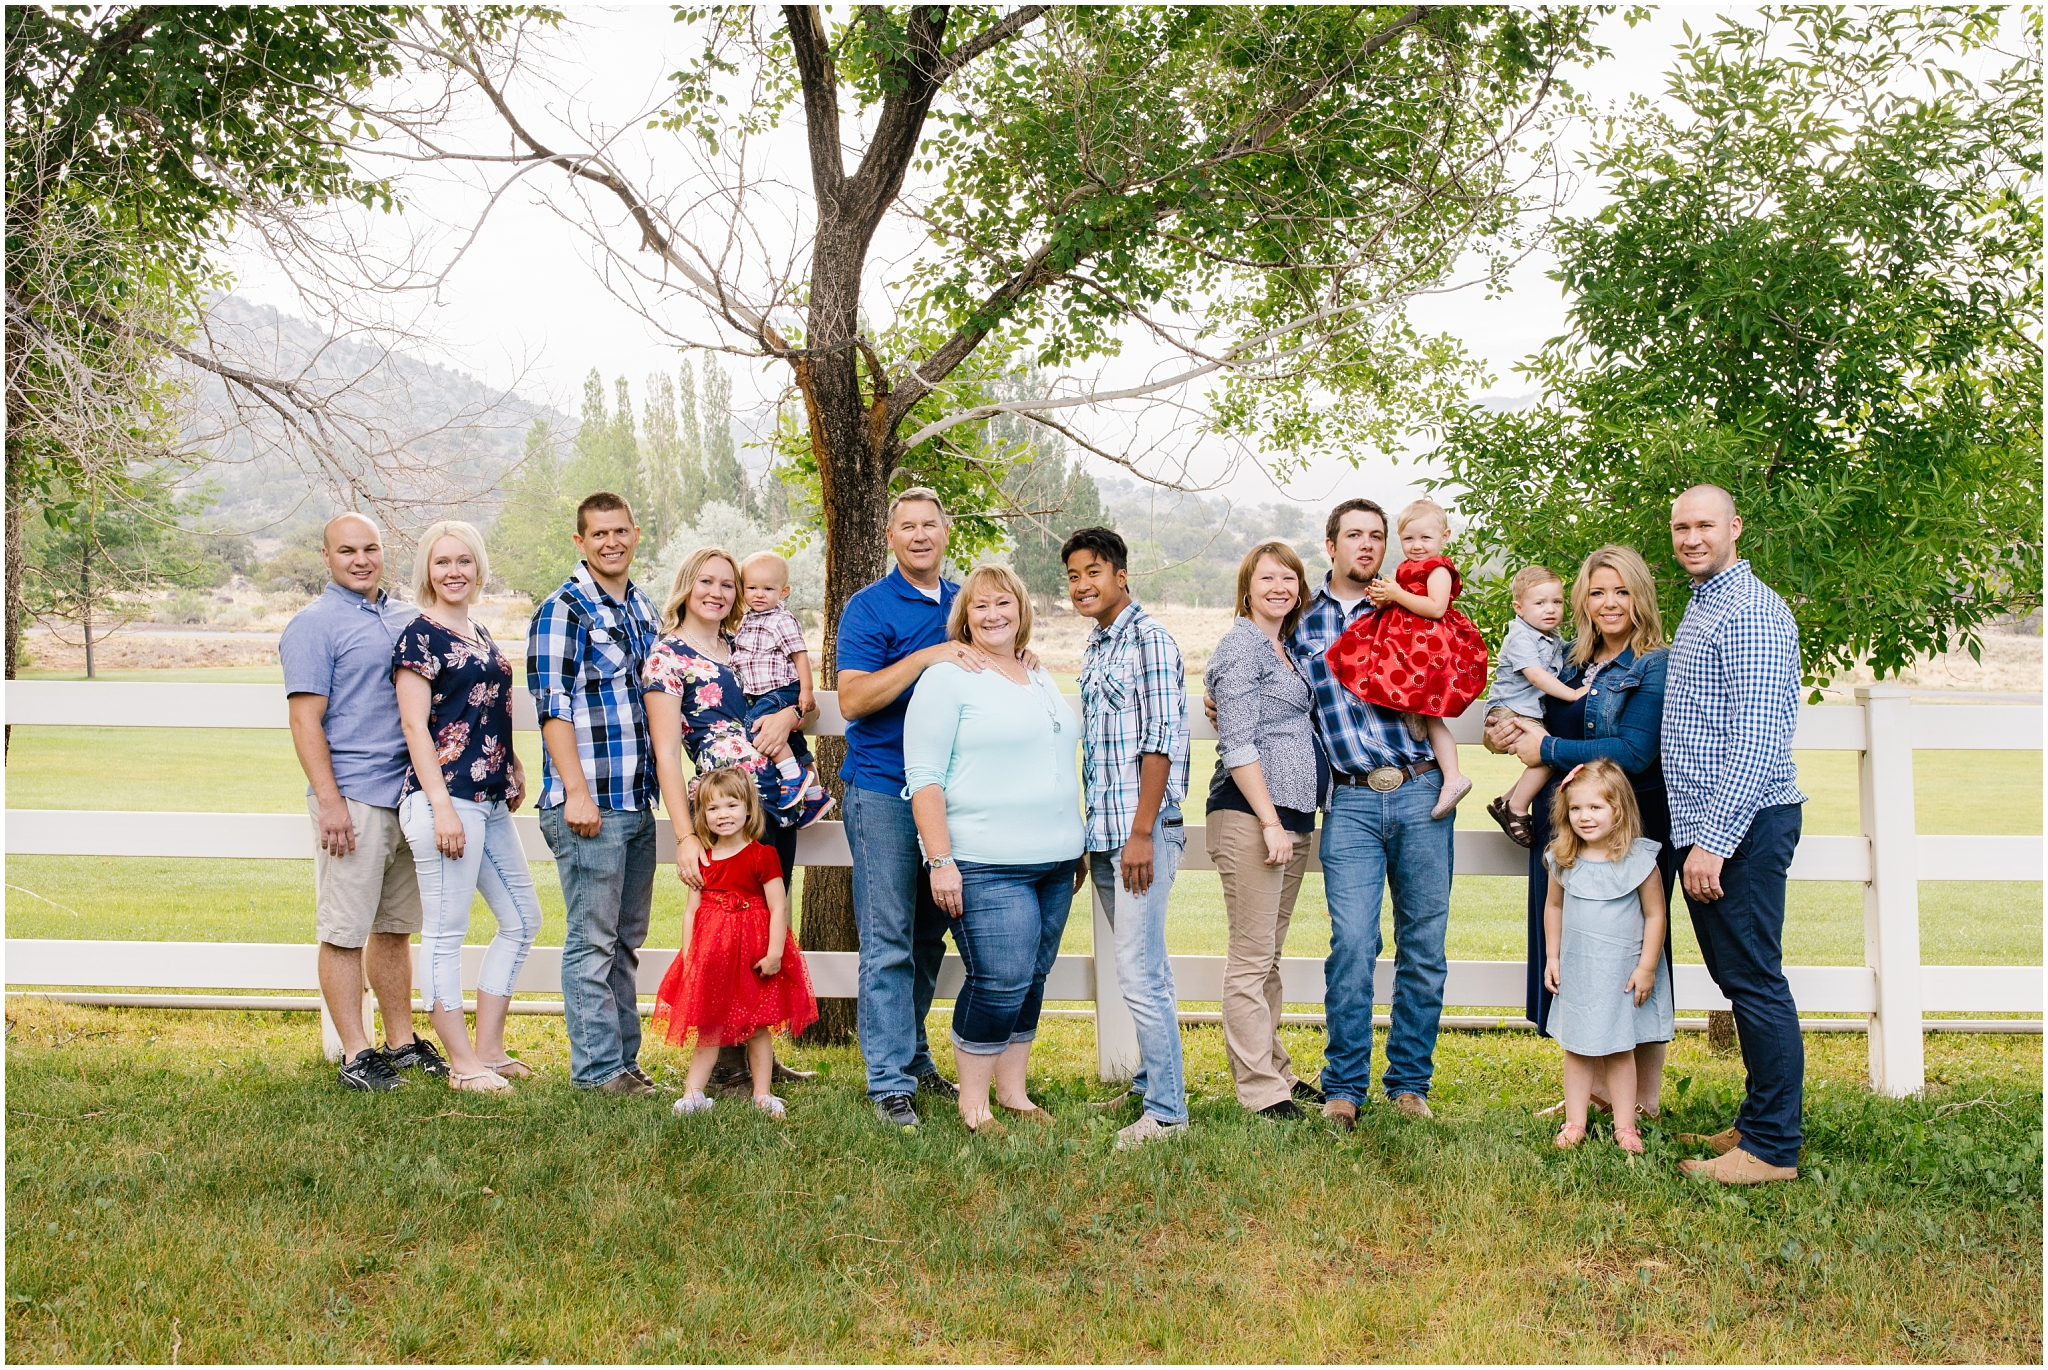 Brinkerhoff-13_Lizzie-B-Imagery-Utah-Family-Photographer-Central-Utah-Photographer-Utah-County-Extended-Family-Session.jpg